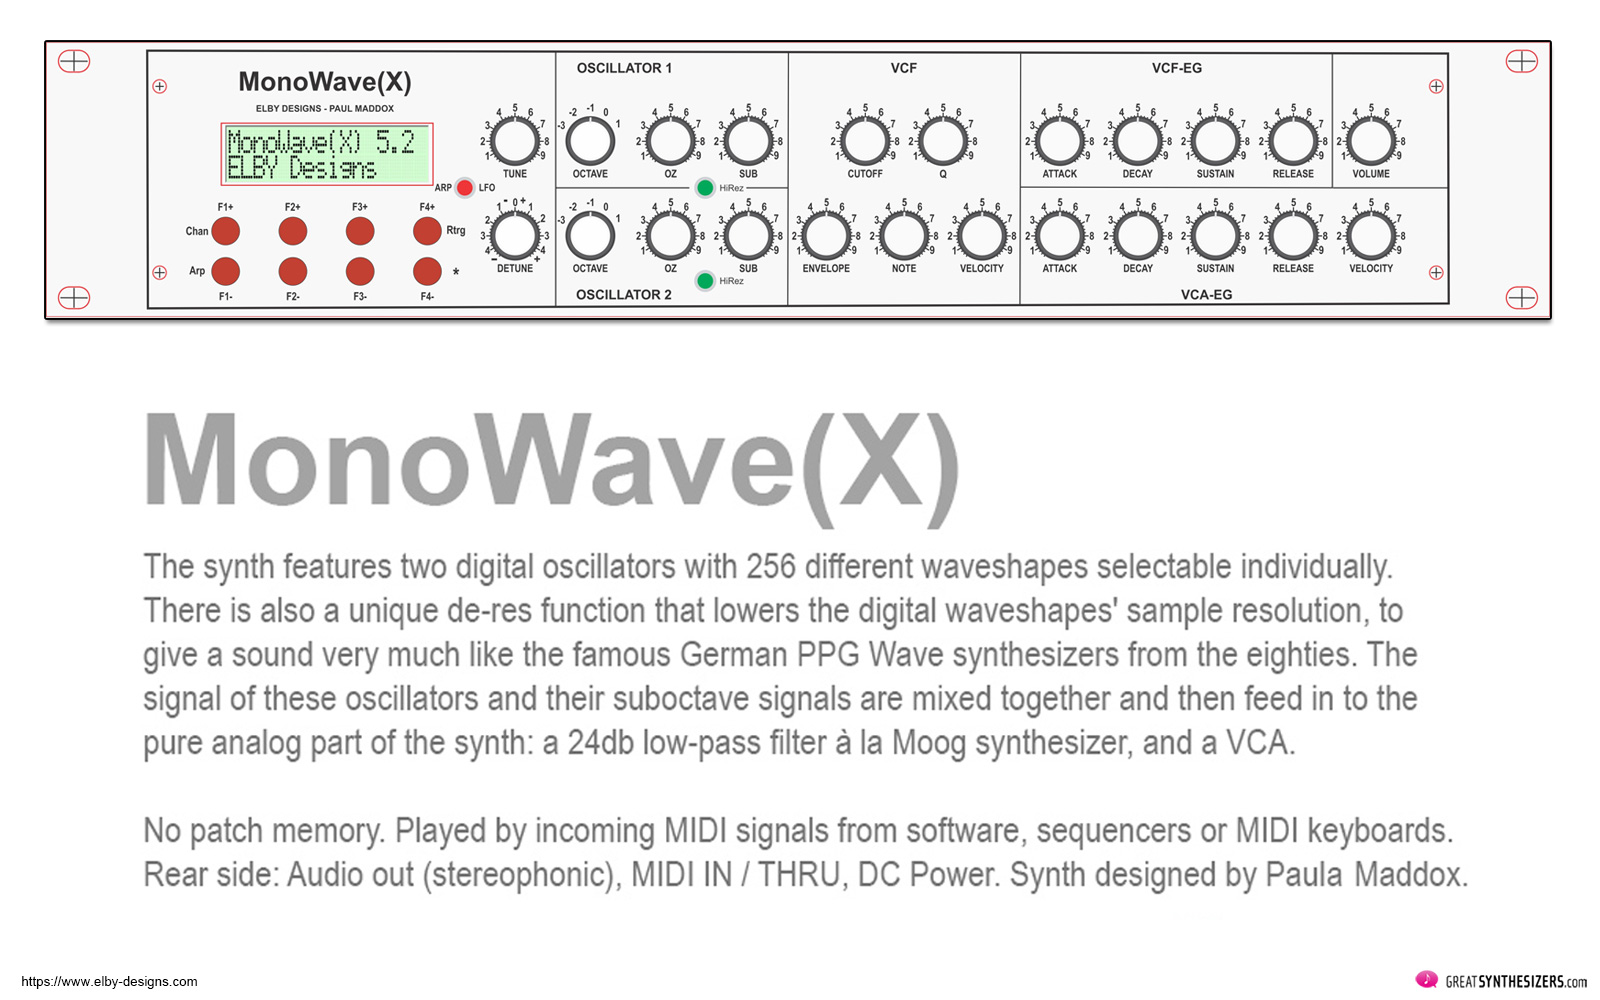 PPG Synthesizer - PPG Wave 2.2 / Wave 2.3 - Monowave X